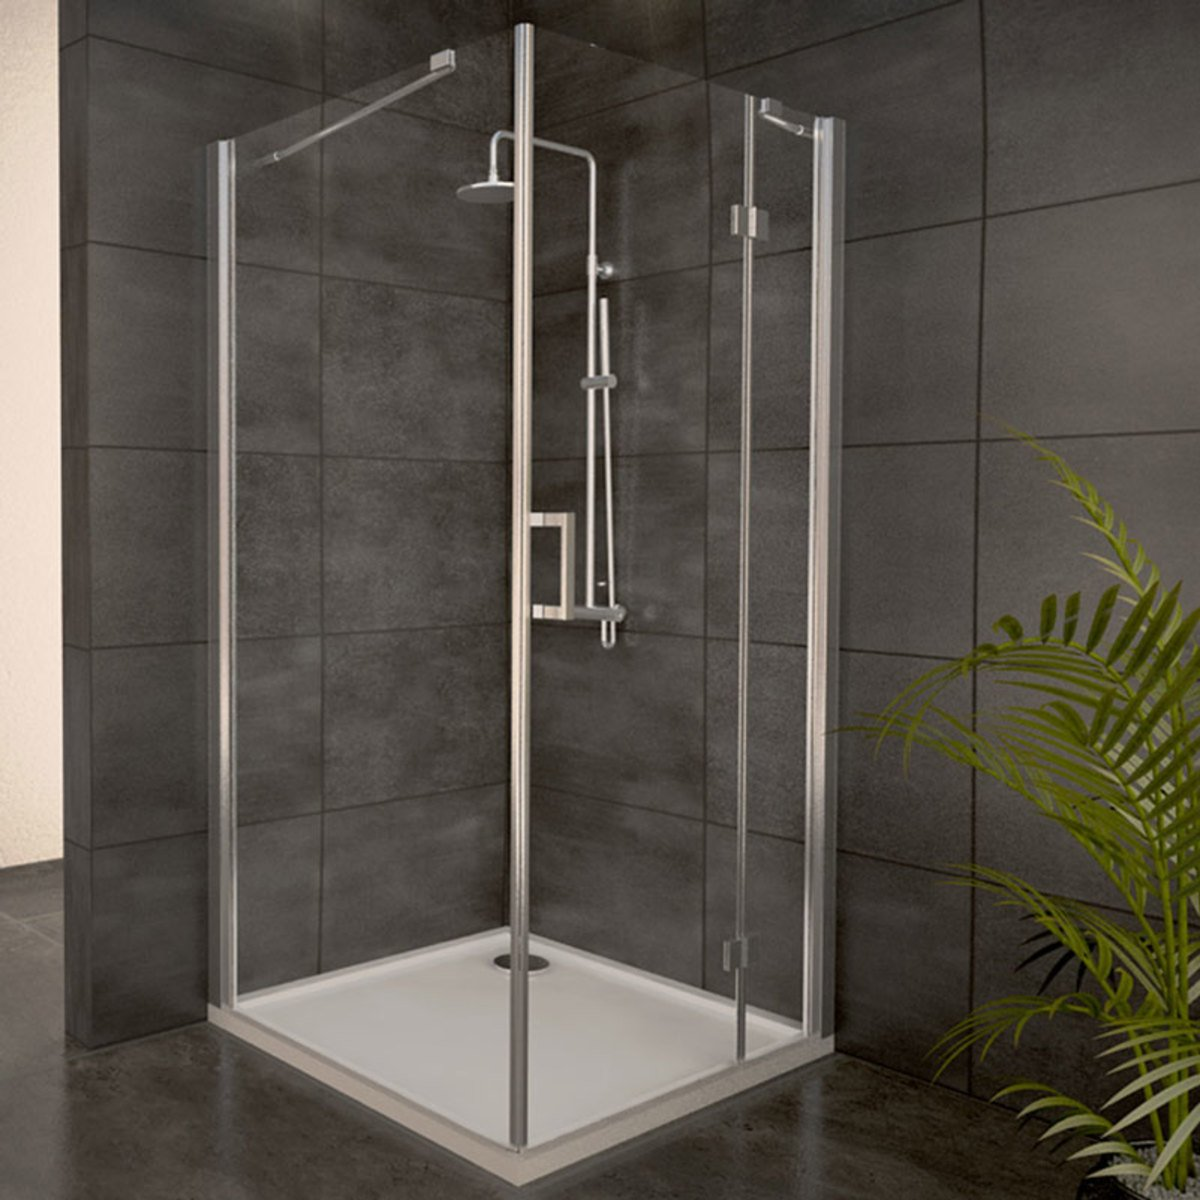 adema glass cabine de douche carr avec 1 porte pivotante 90x90x200cm vitre claire avec receveur. Black Bedroom Furniture Sets. Home Design Ideas